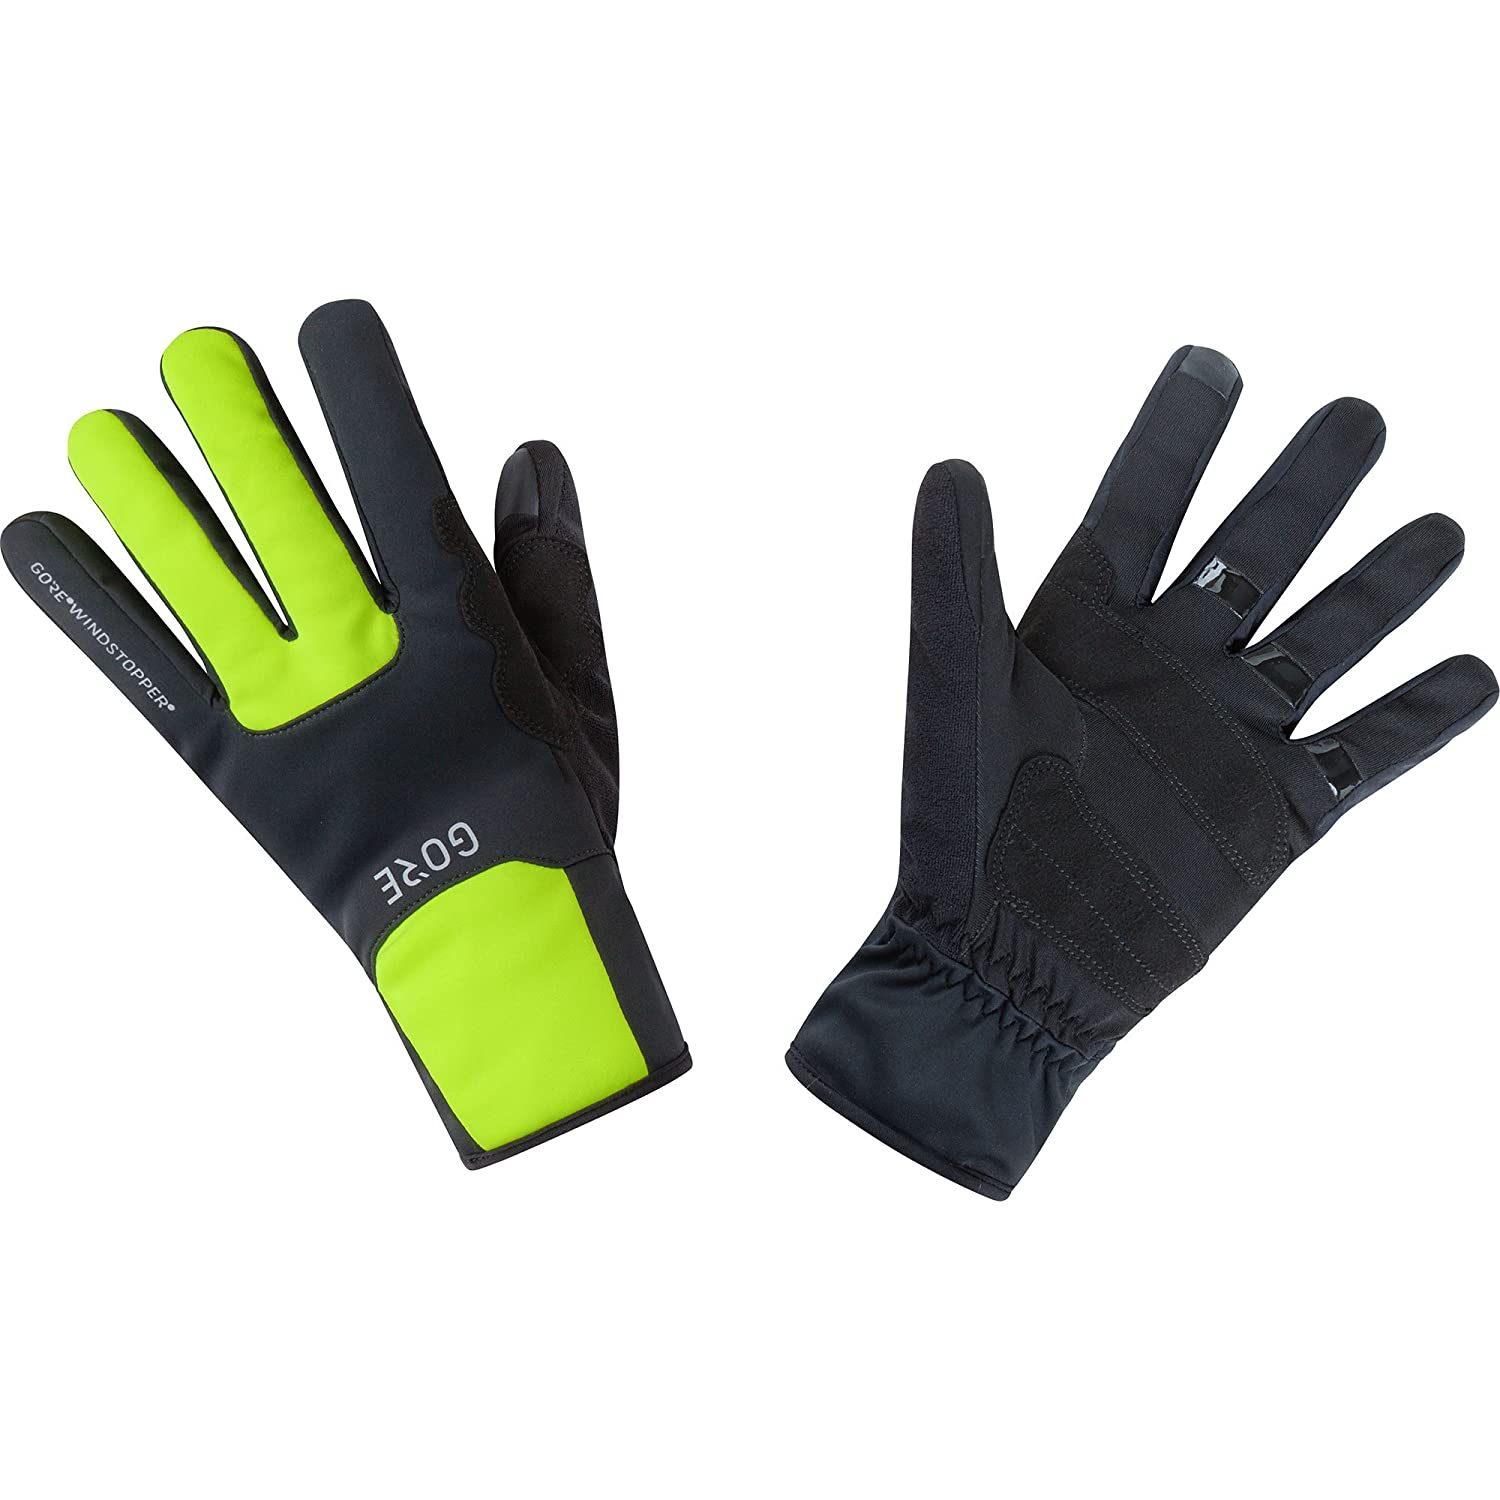 GORE Wear Unisexe Gants coupe-vent, M GORE WINDSTOPPER Thermo Gloves, 100310